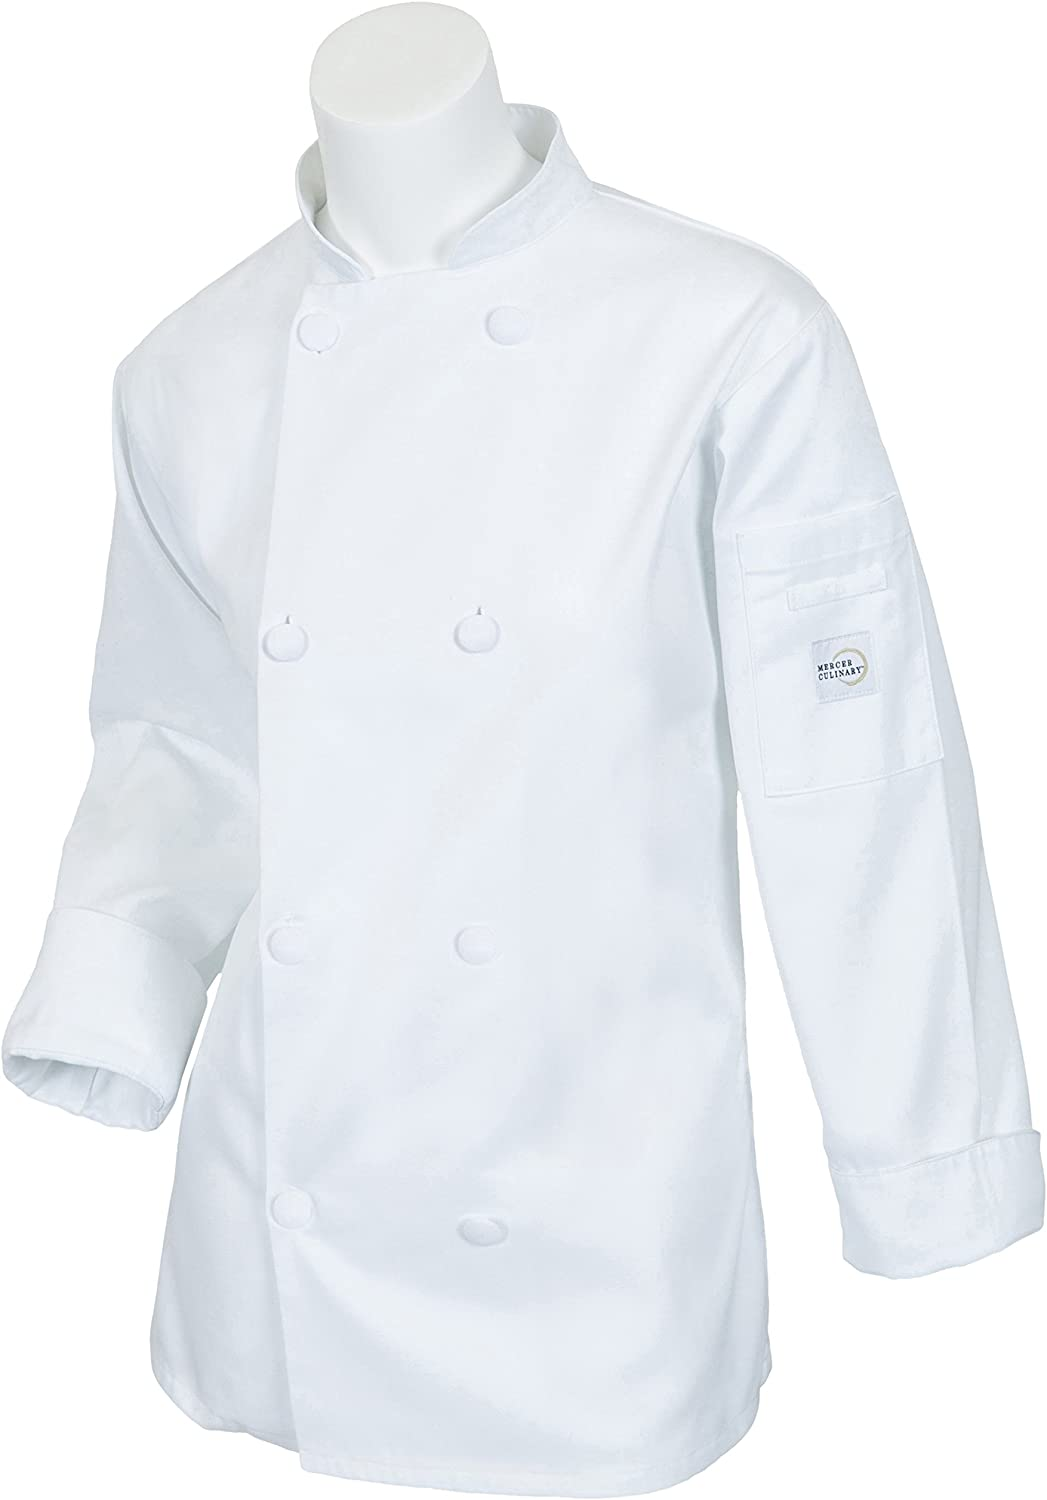 Mercer Culinary Millennia Women's Cook Jacket with Cloth Knot Buttons, X-Small, White